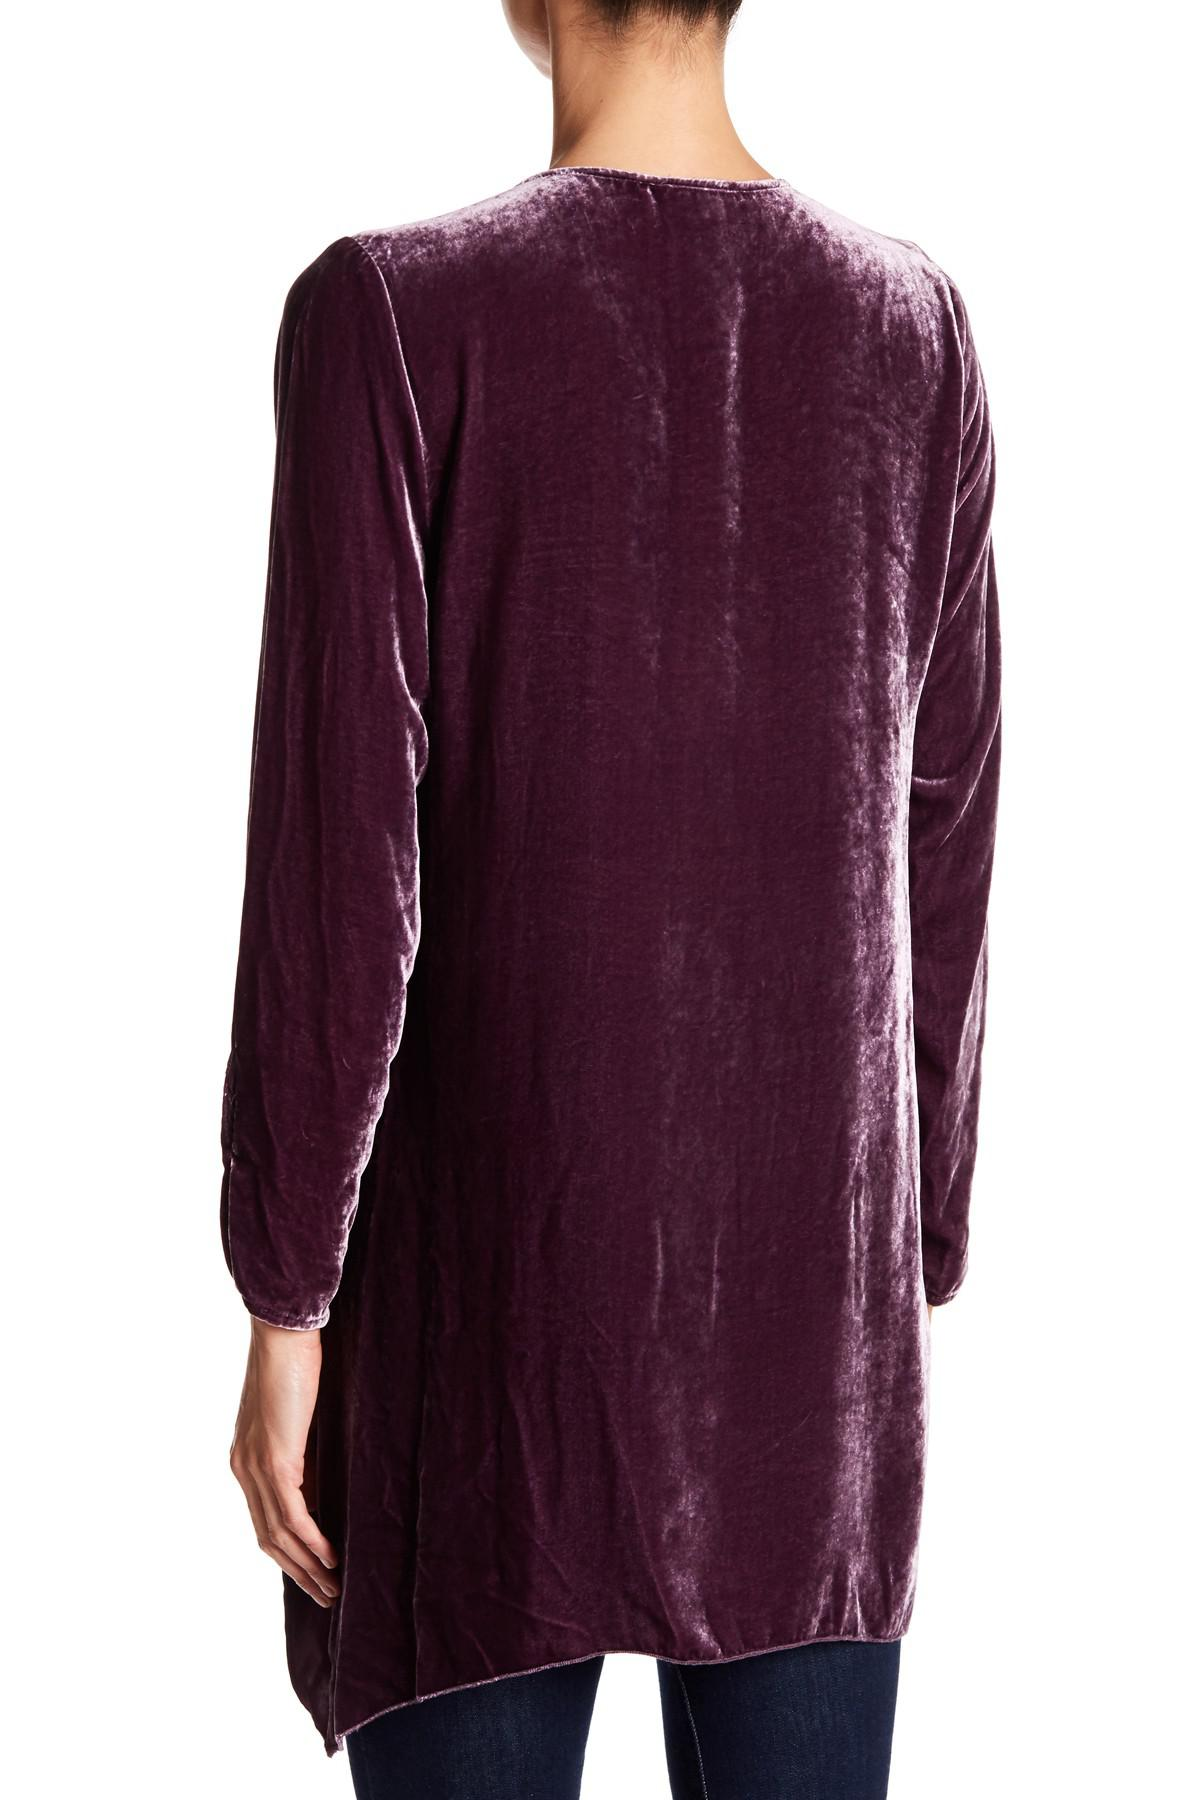 Johnny Was Floral Embroidered Velvet Tunic in Purple - Lyst